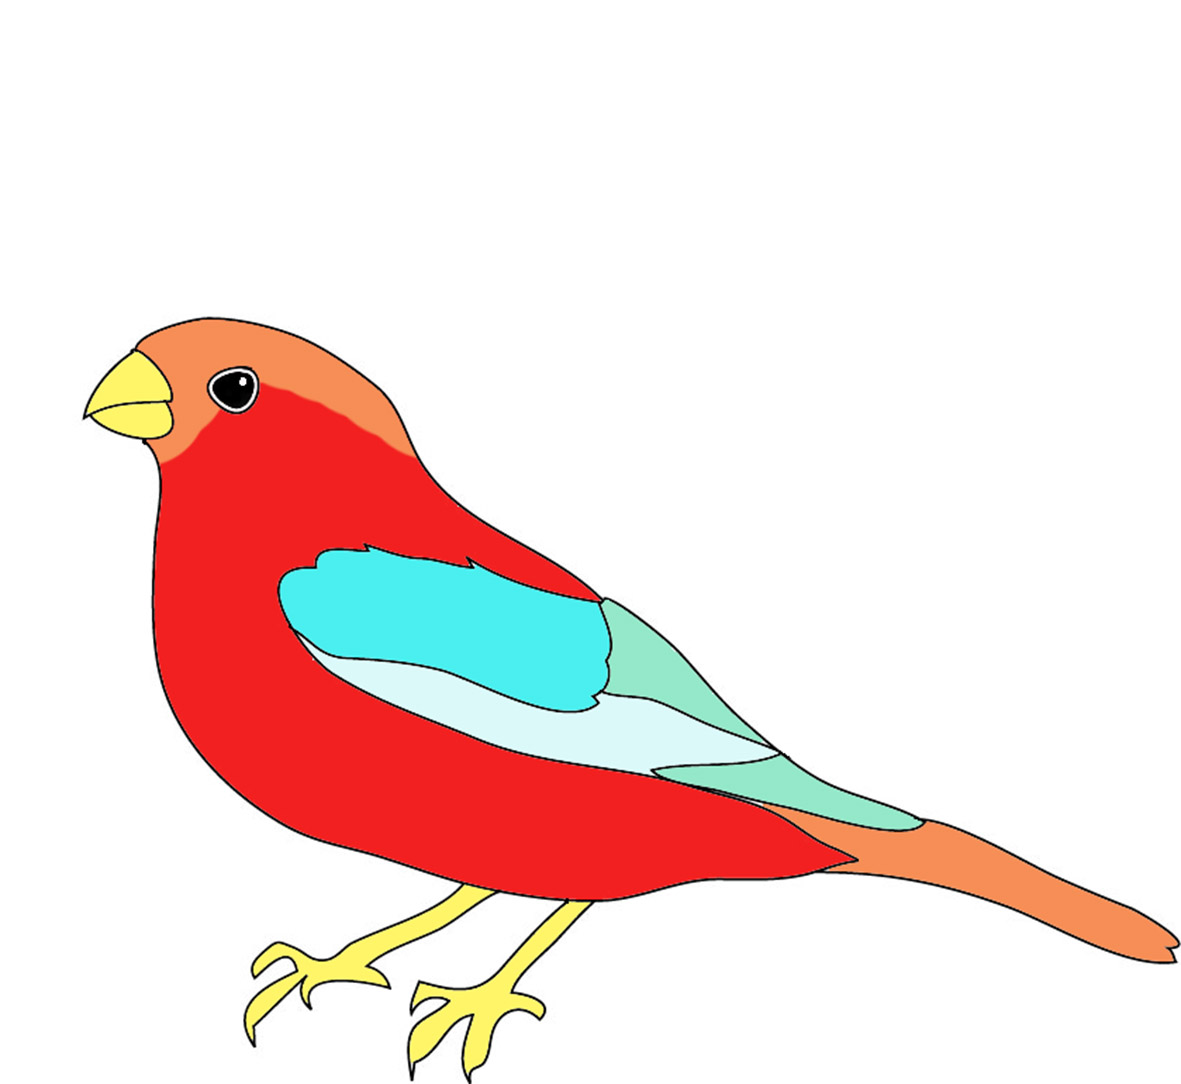 bird colored in many colors